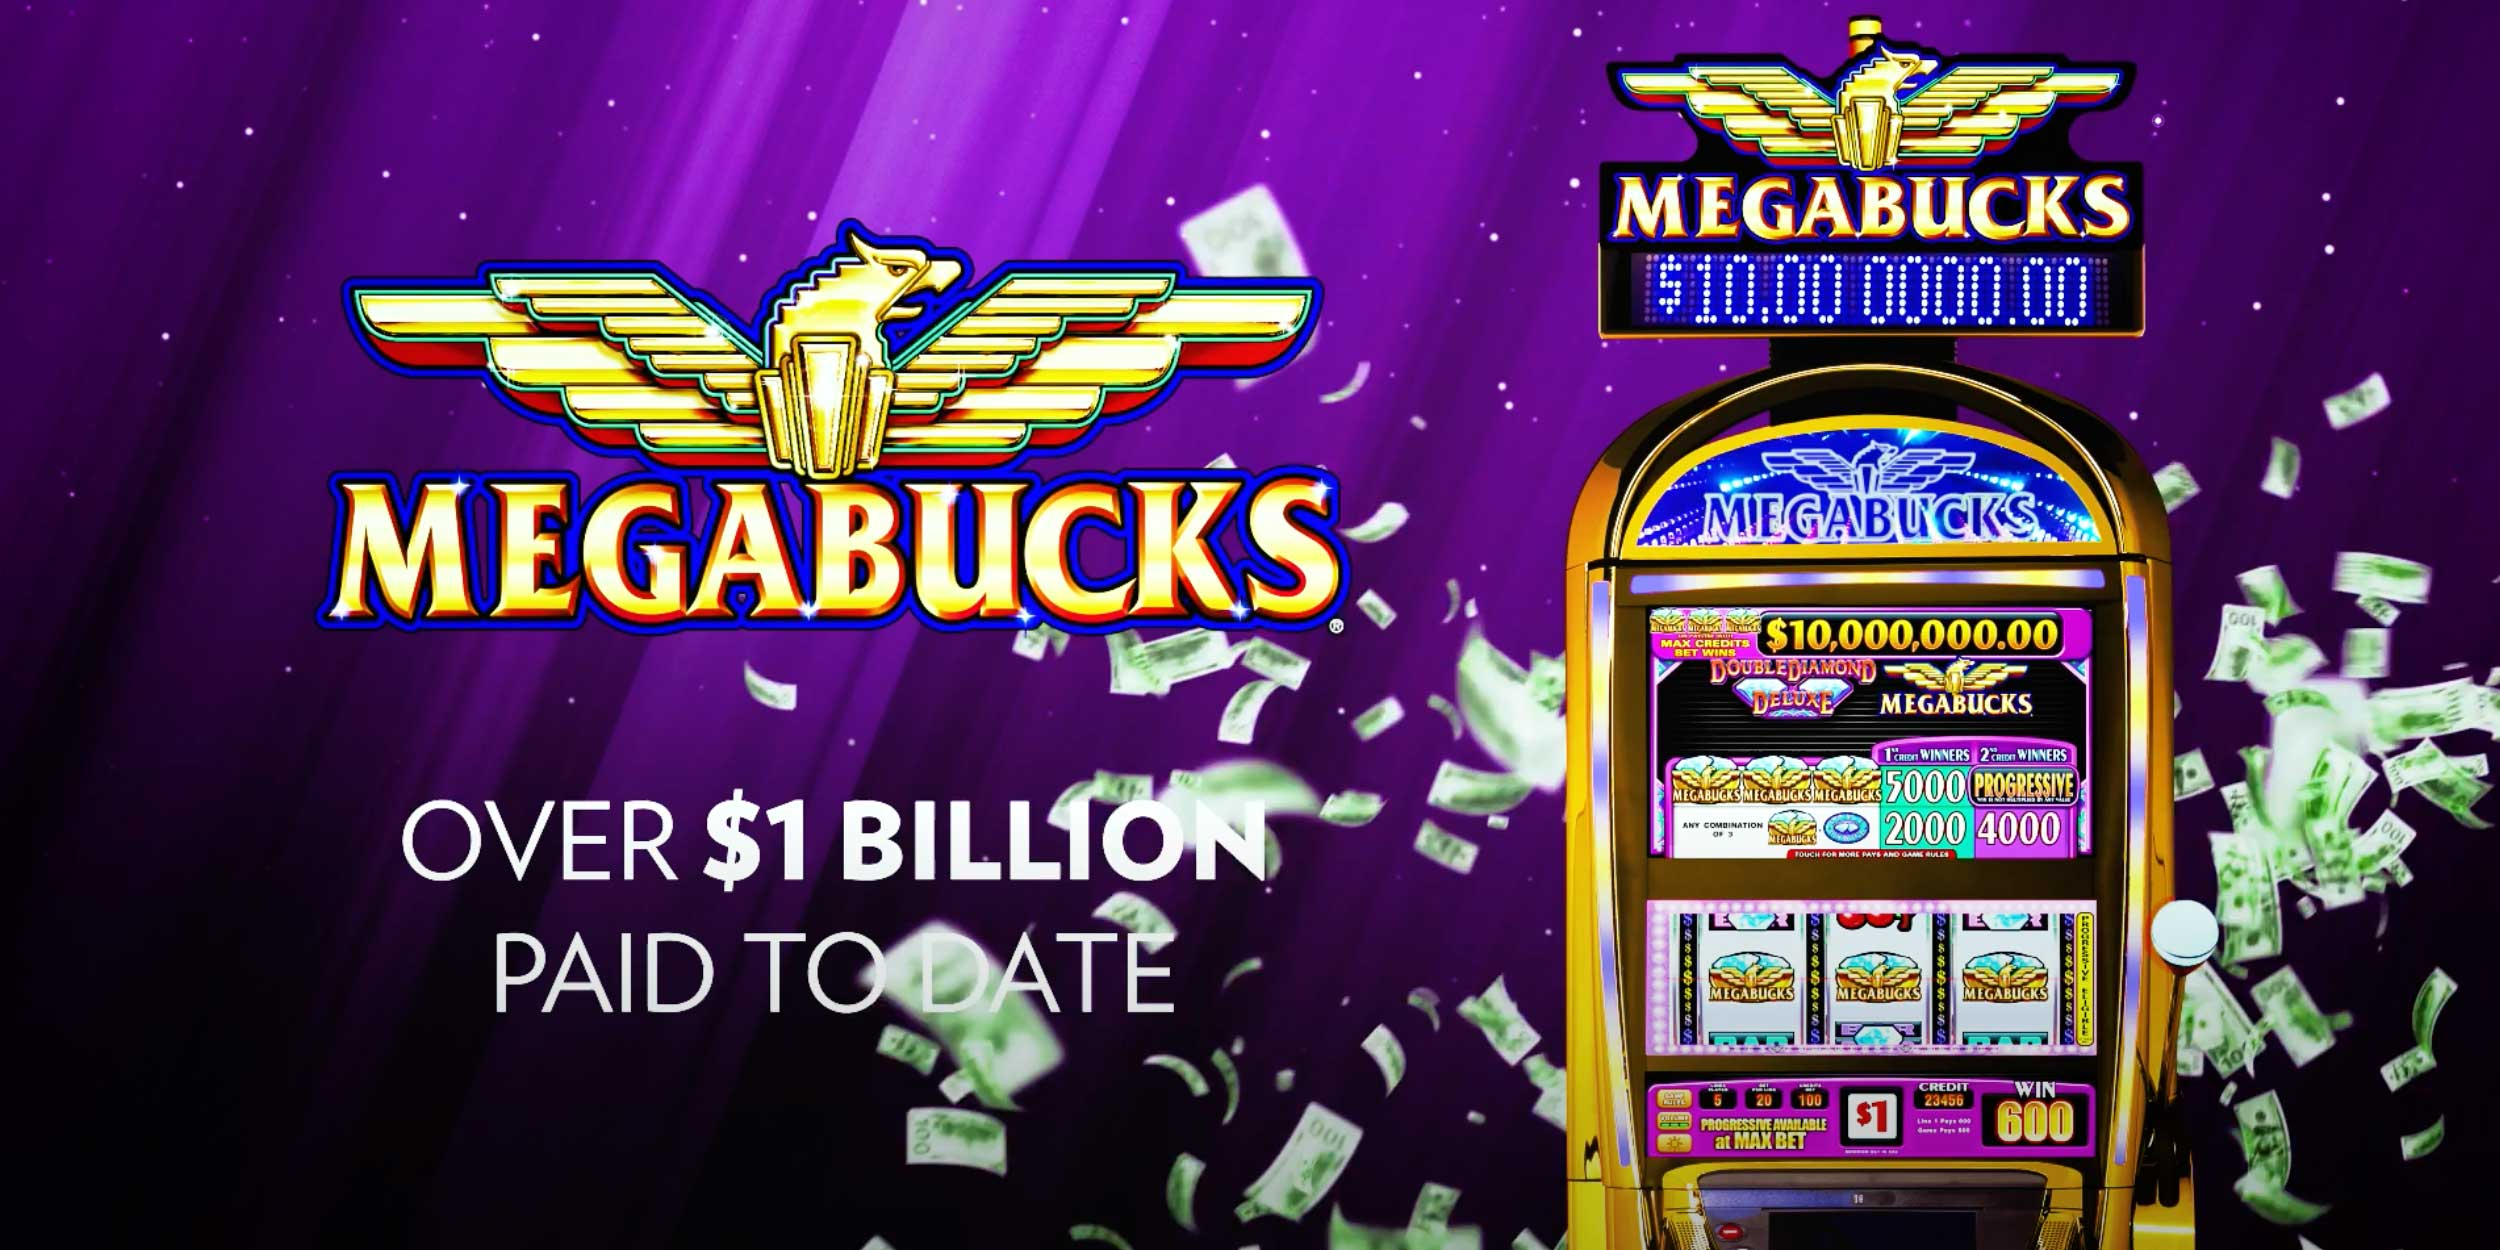 10 Biggest Slot Machine Wins